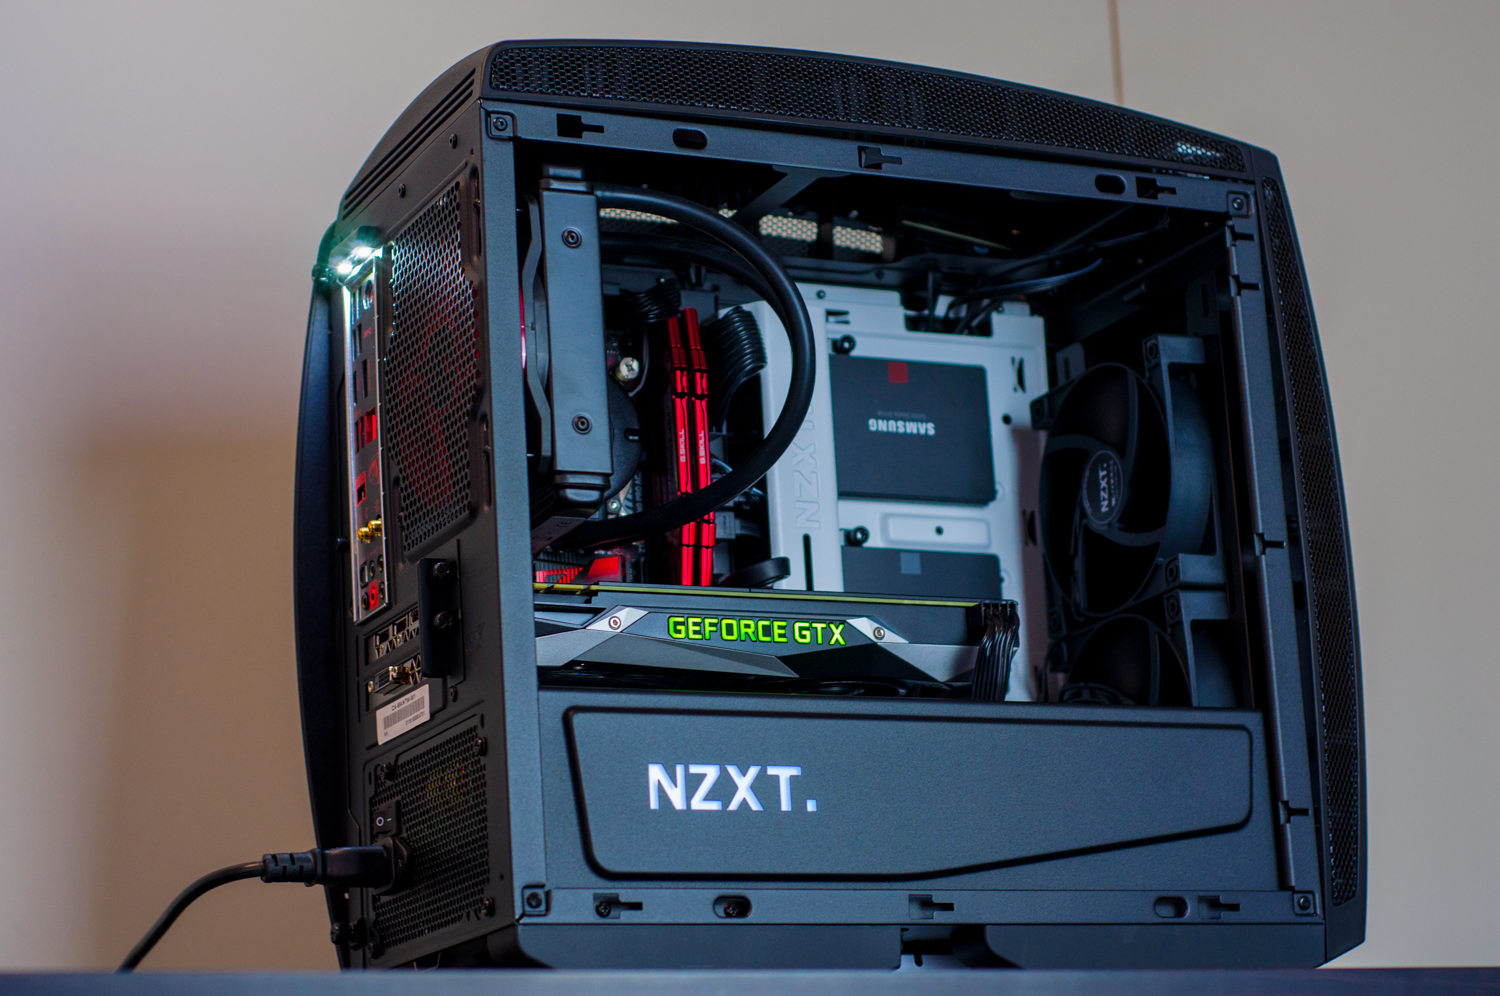 ryu custom gaming pc in nzxt manta white evatech news gaming pc build guide 2016 Gaming PC Build 2014